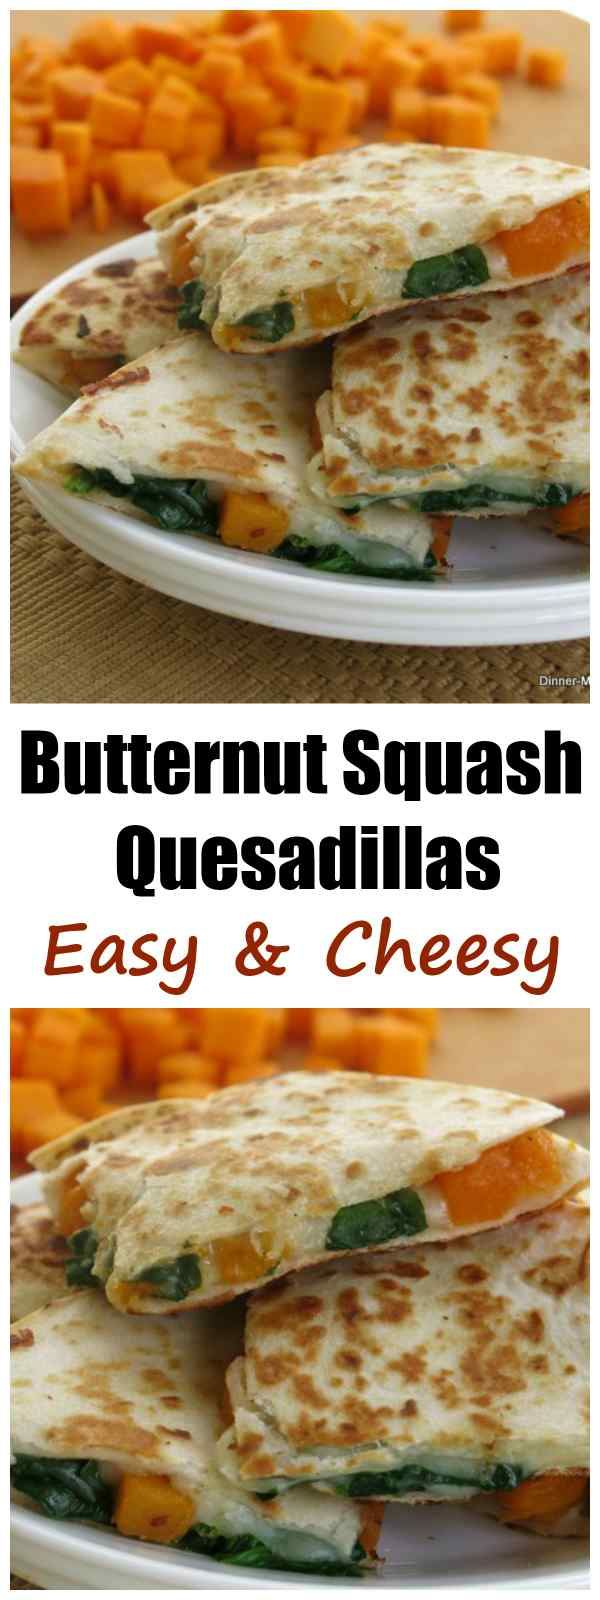 Butternut Squash and Spinach Quesadillas Recipe